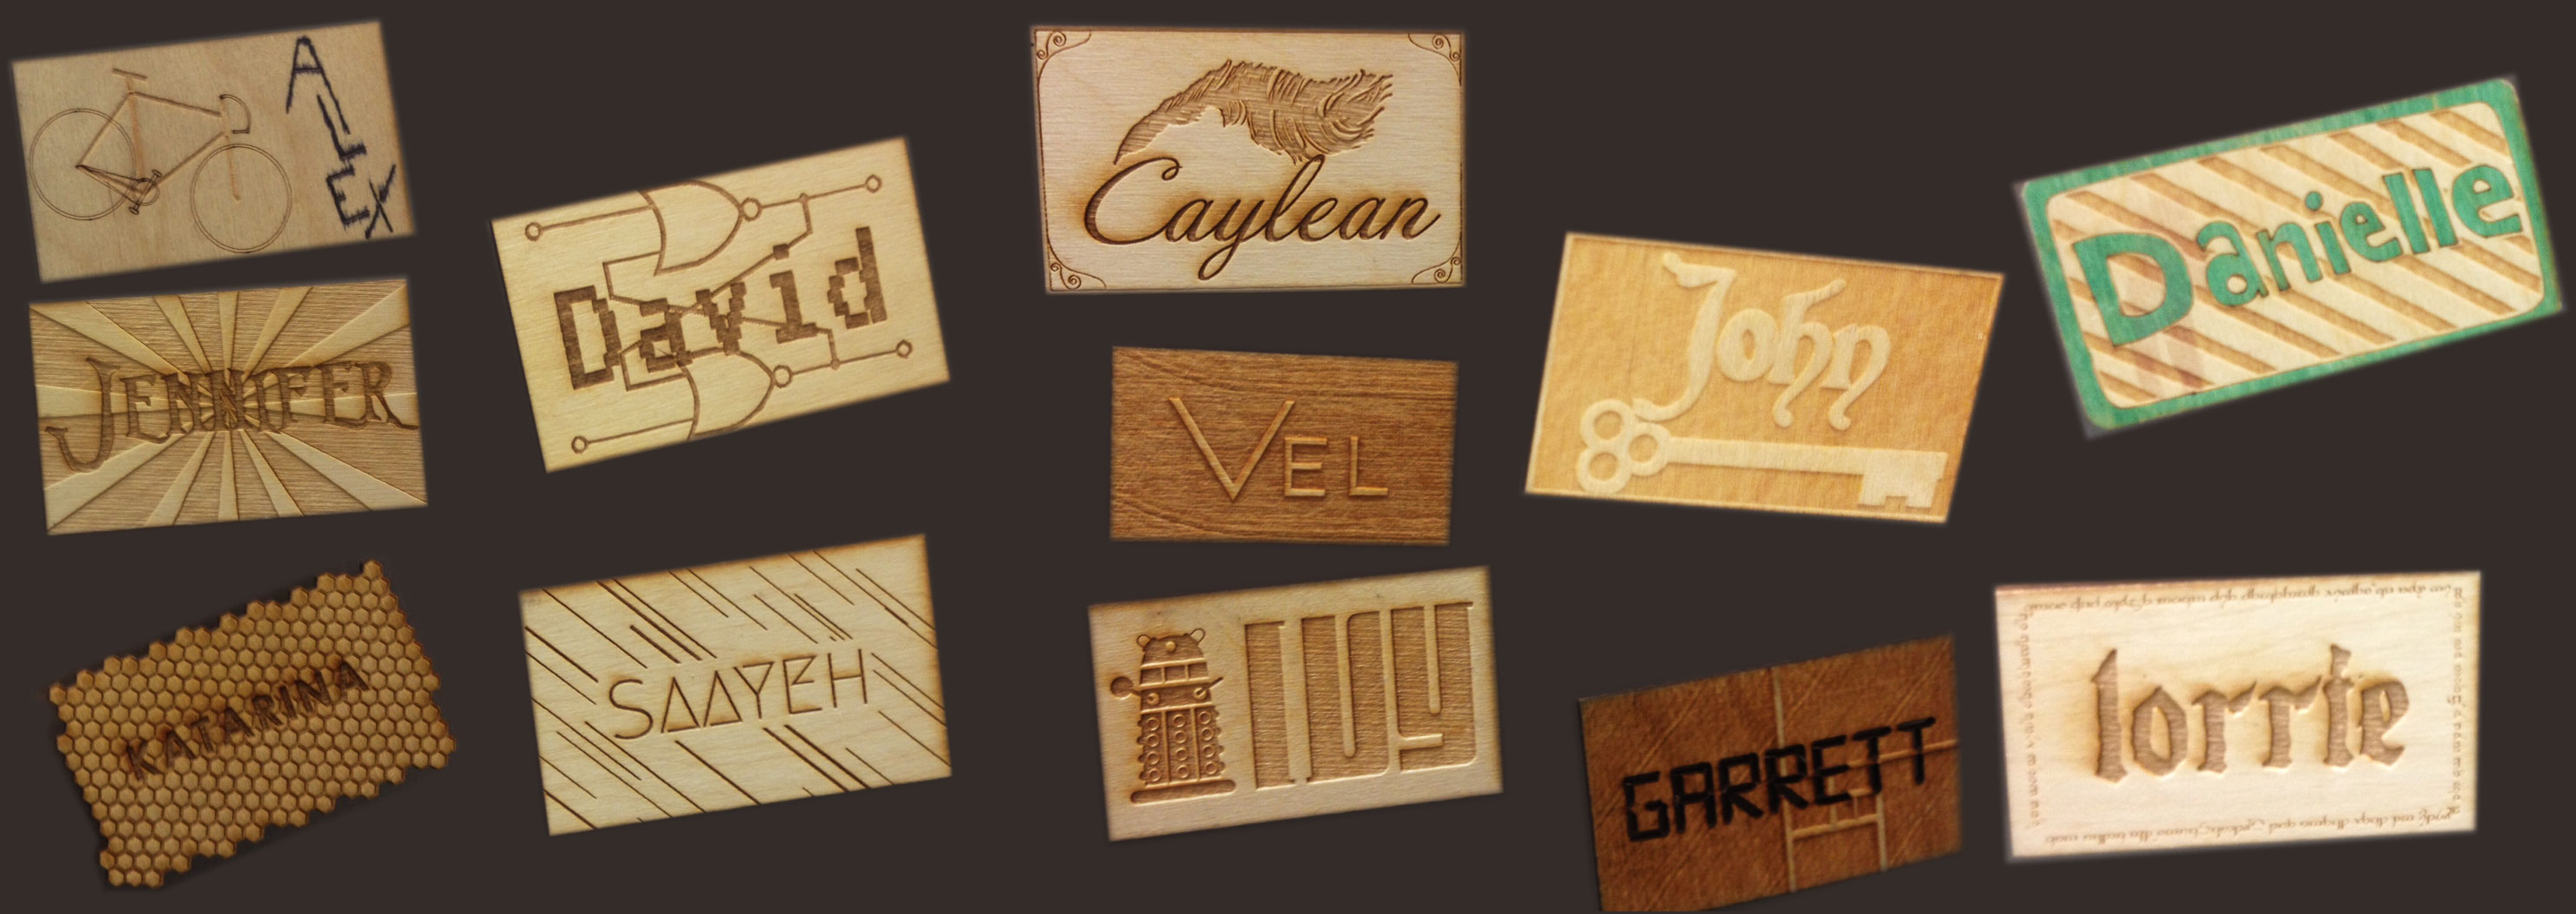 Wood Laser Cutting & Engraving Name Tags